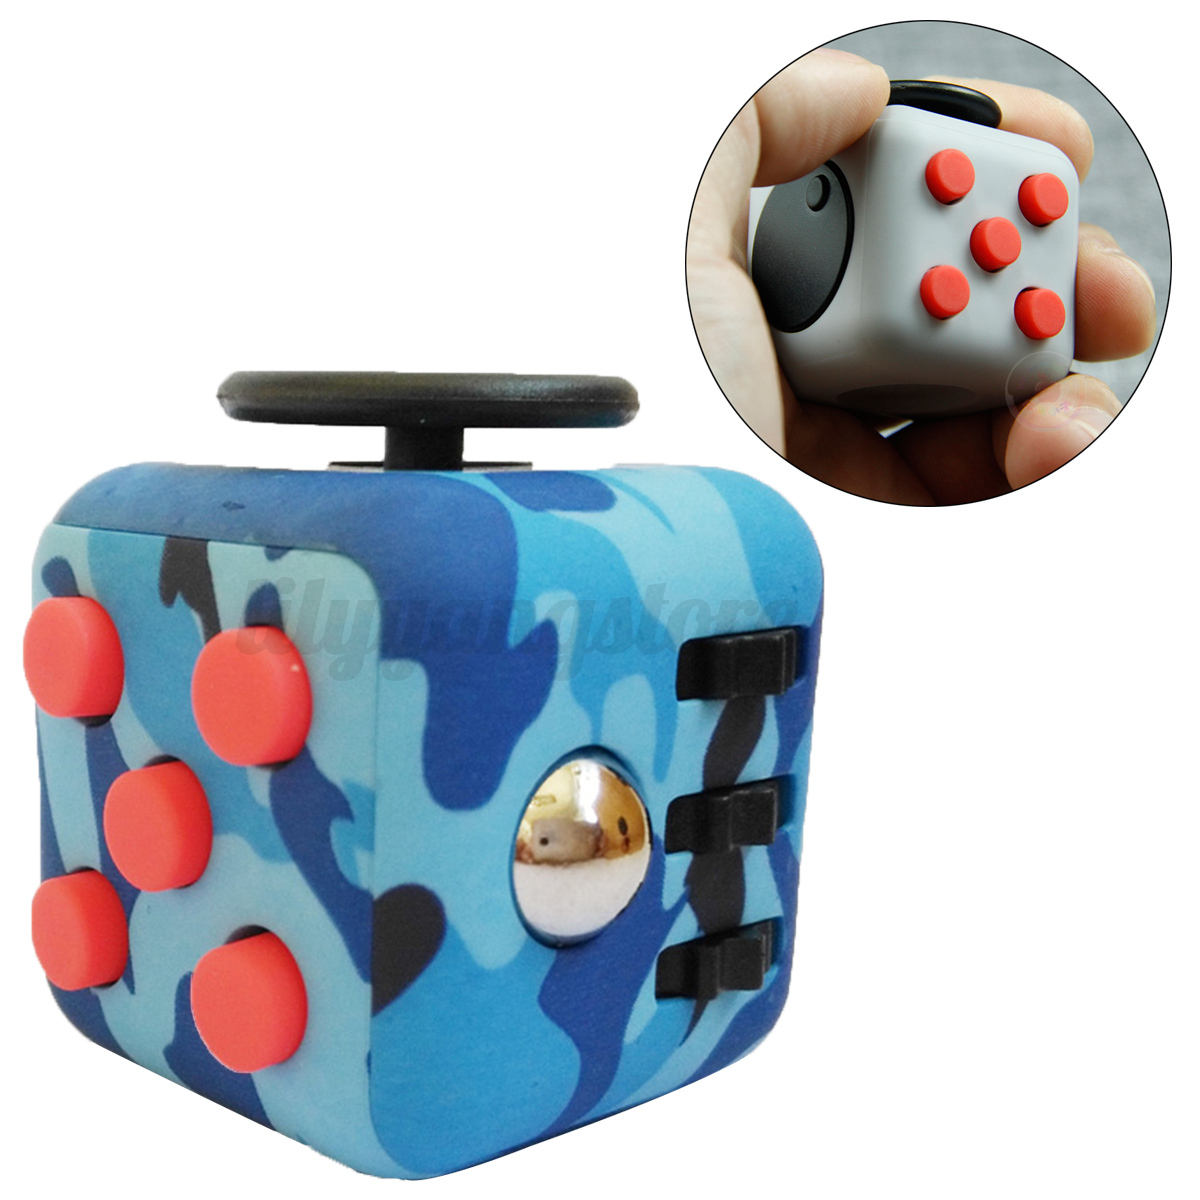 Stress Relief Toys For Adults : New fidget anxiety stress relief cube focus adults kids